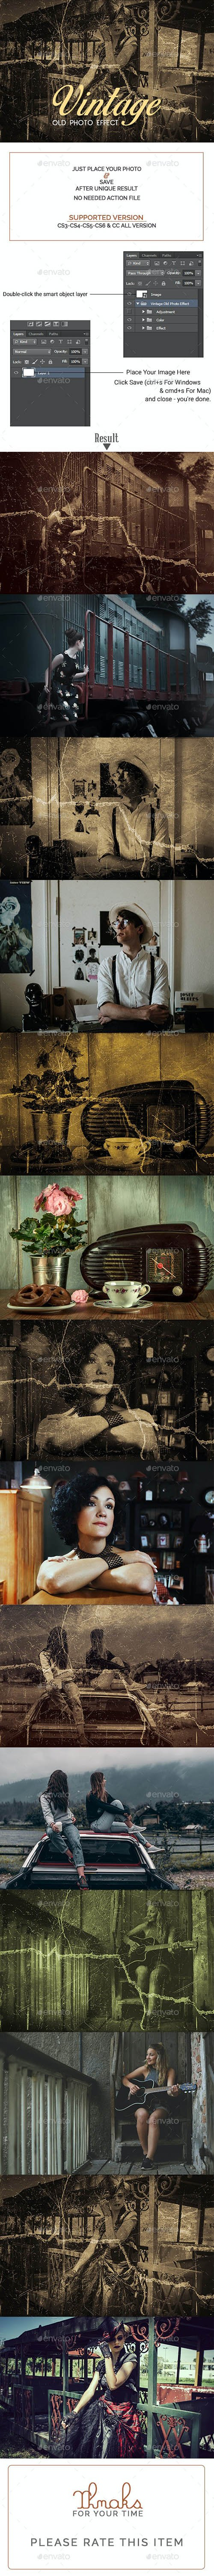 GraphicRiver - Vintage Old Photo Effect 26613892